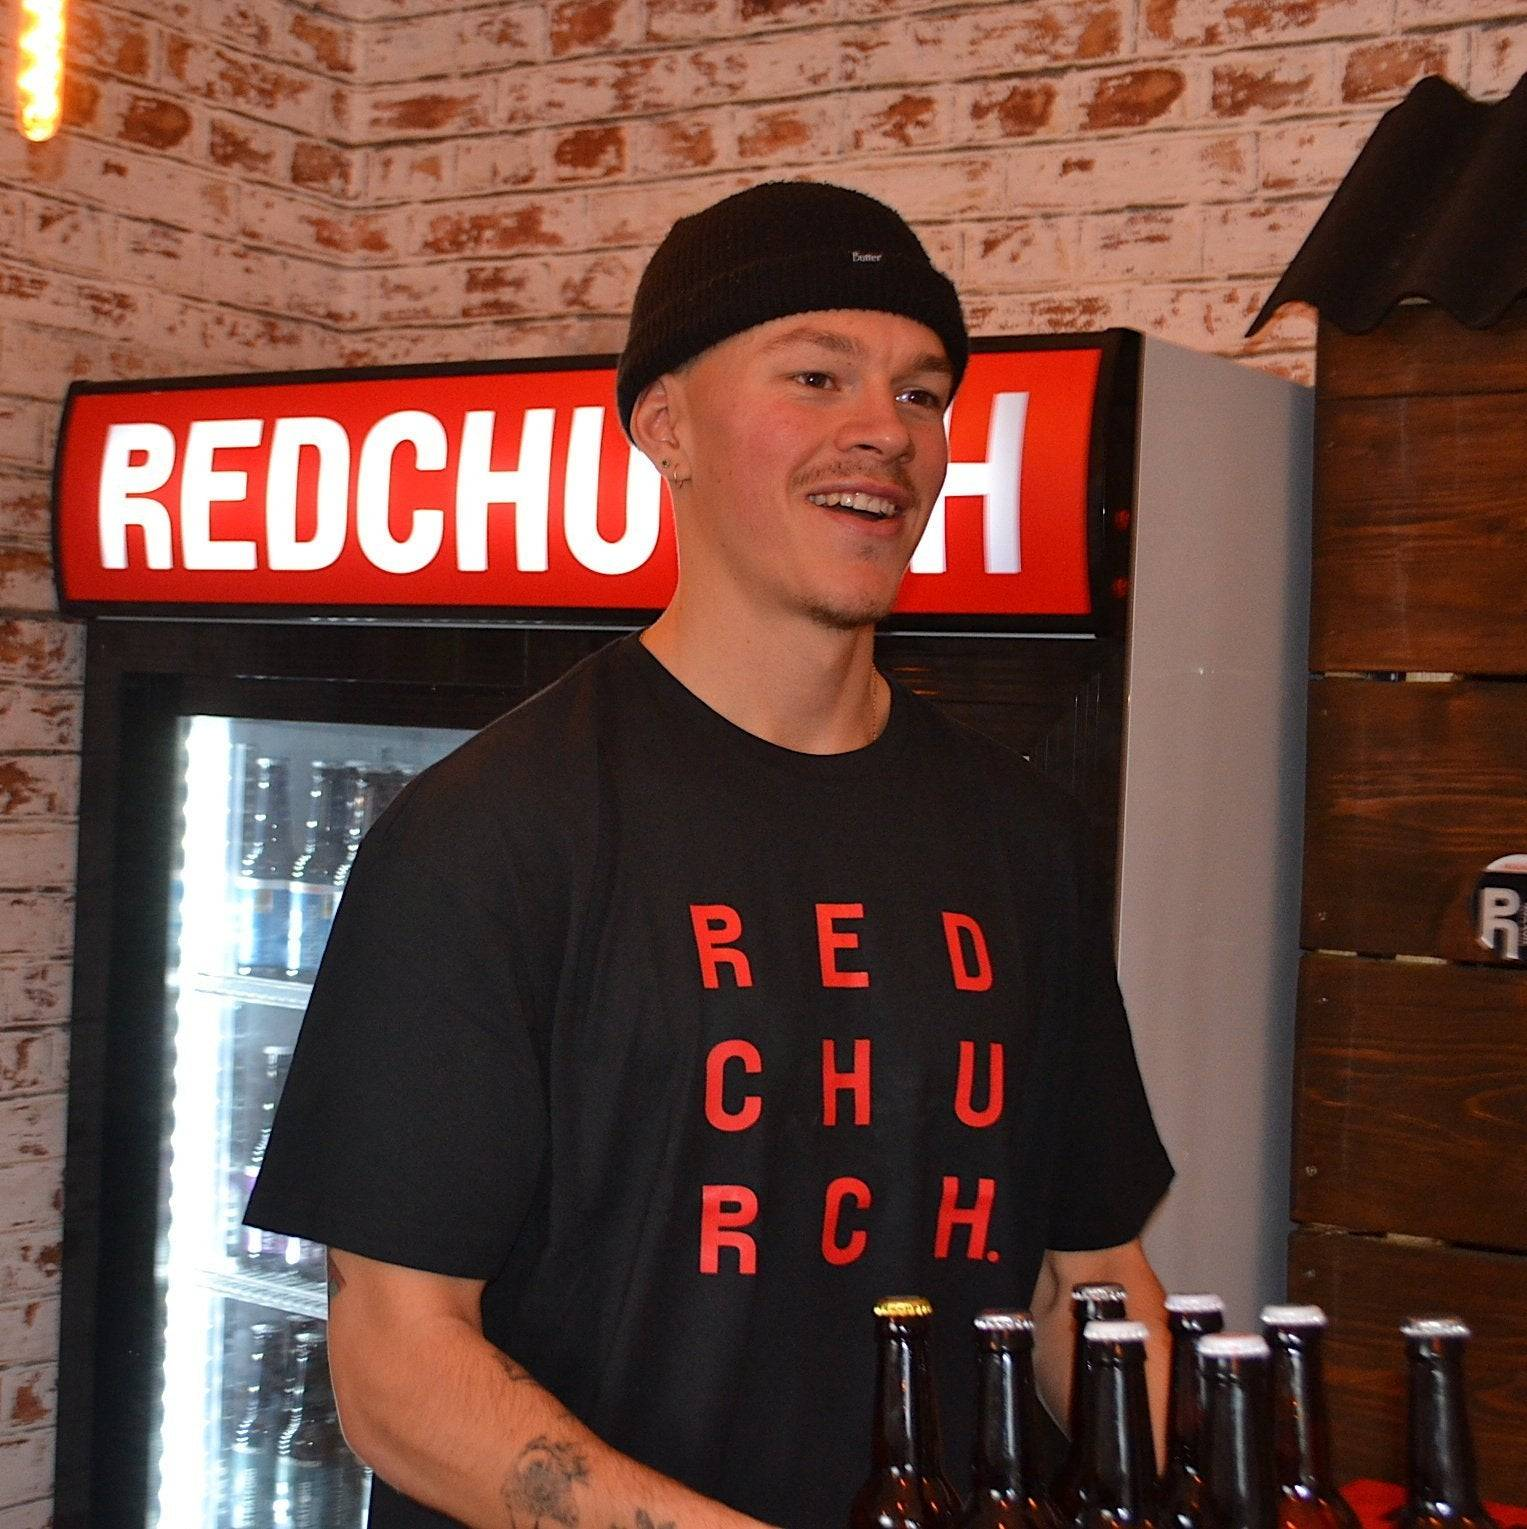 Redchurch Brewery Redchurch 9 Letter T-Shirt - Small  38-40